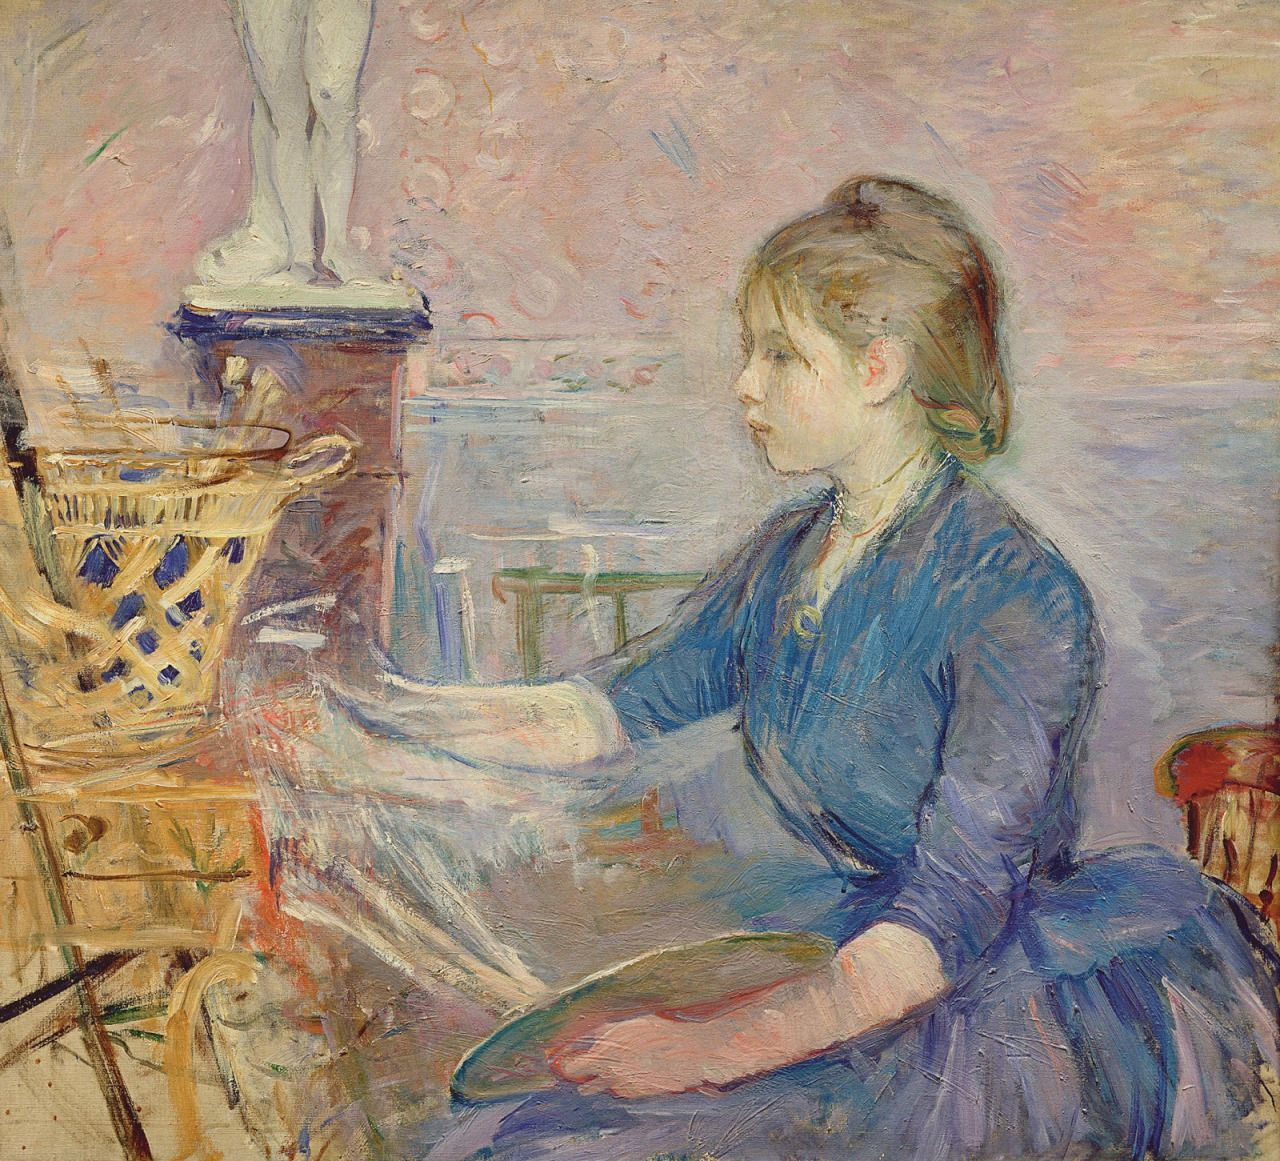 Paule Gobillard Painting (1886). Berthe Morisot (French, 1841-1895). Oil on canvas. Musée Marmottan Monet.